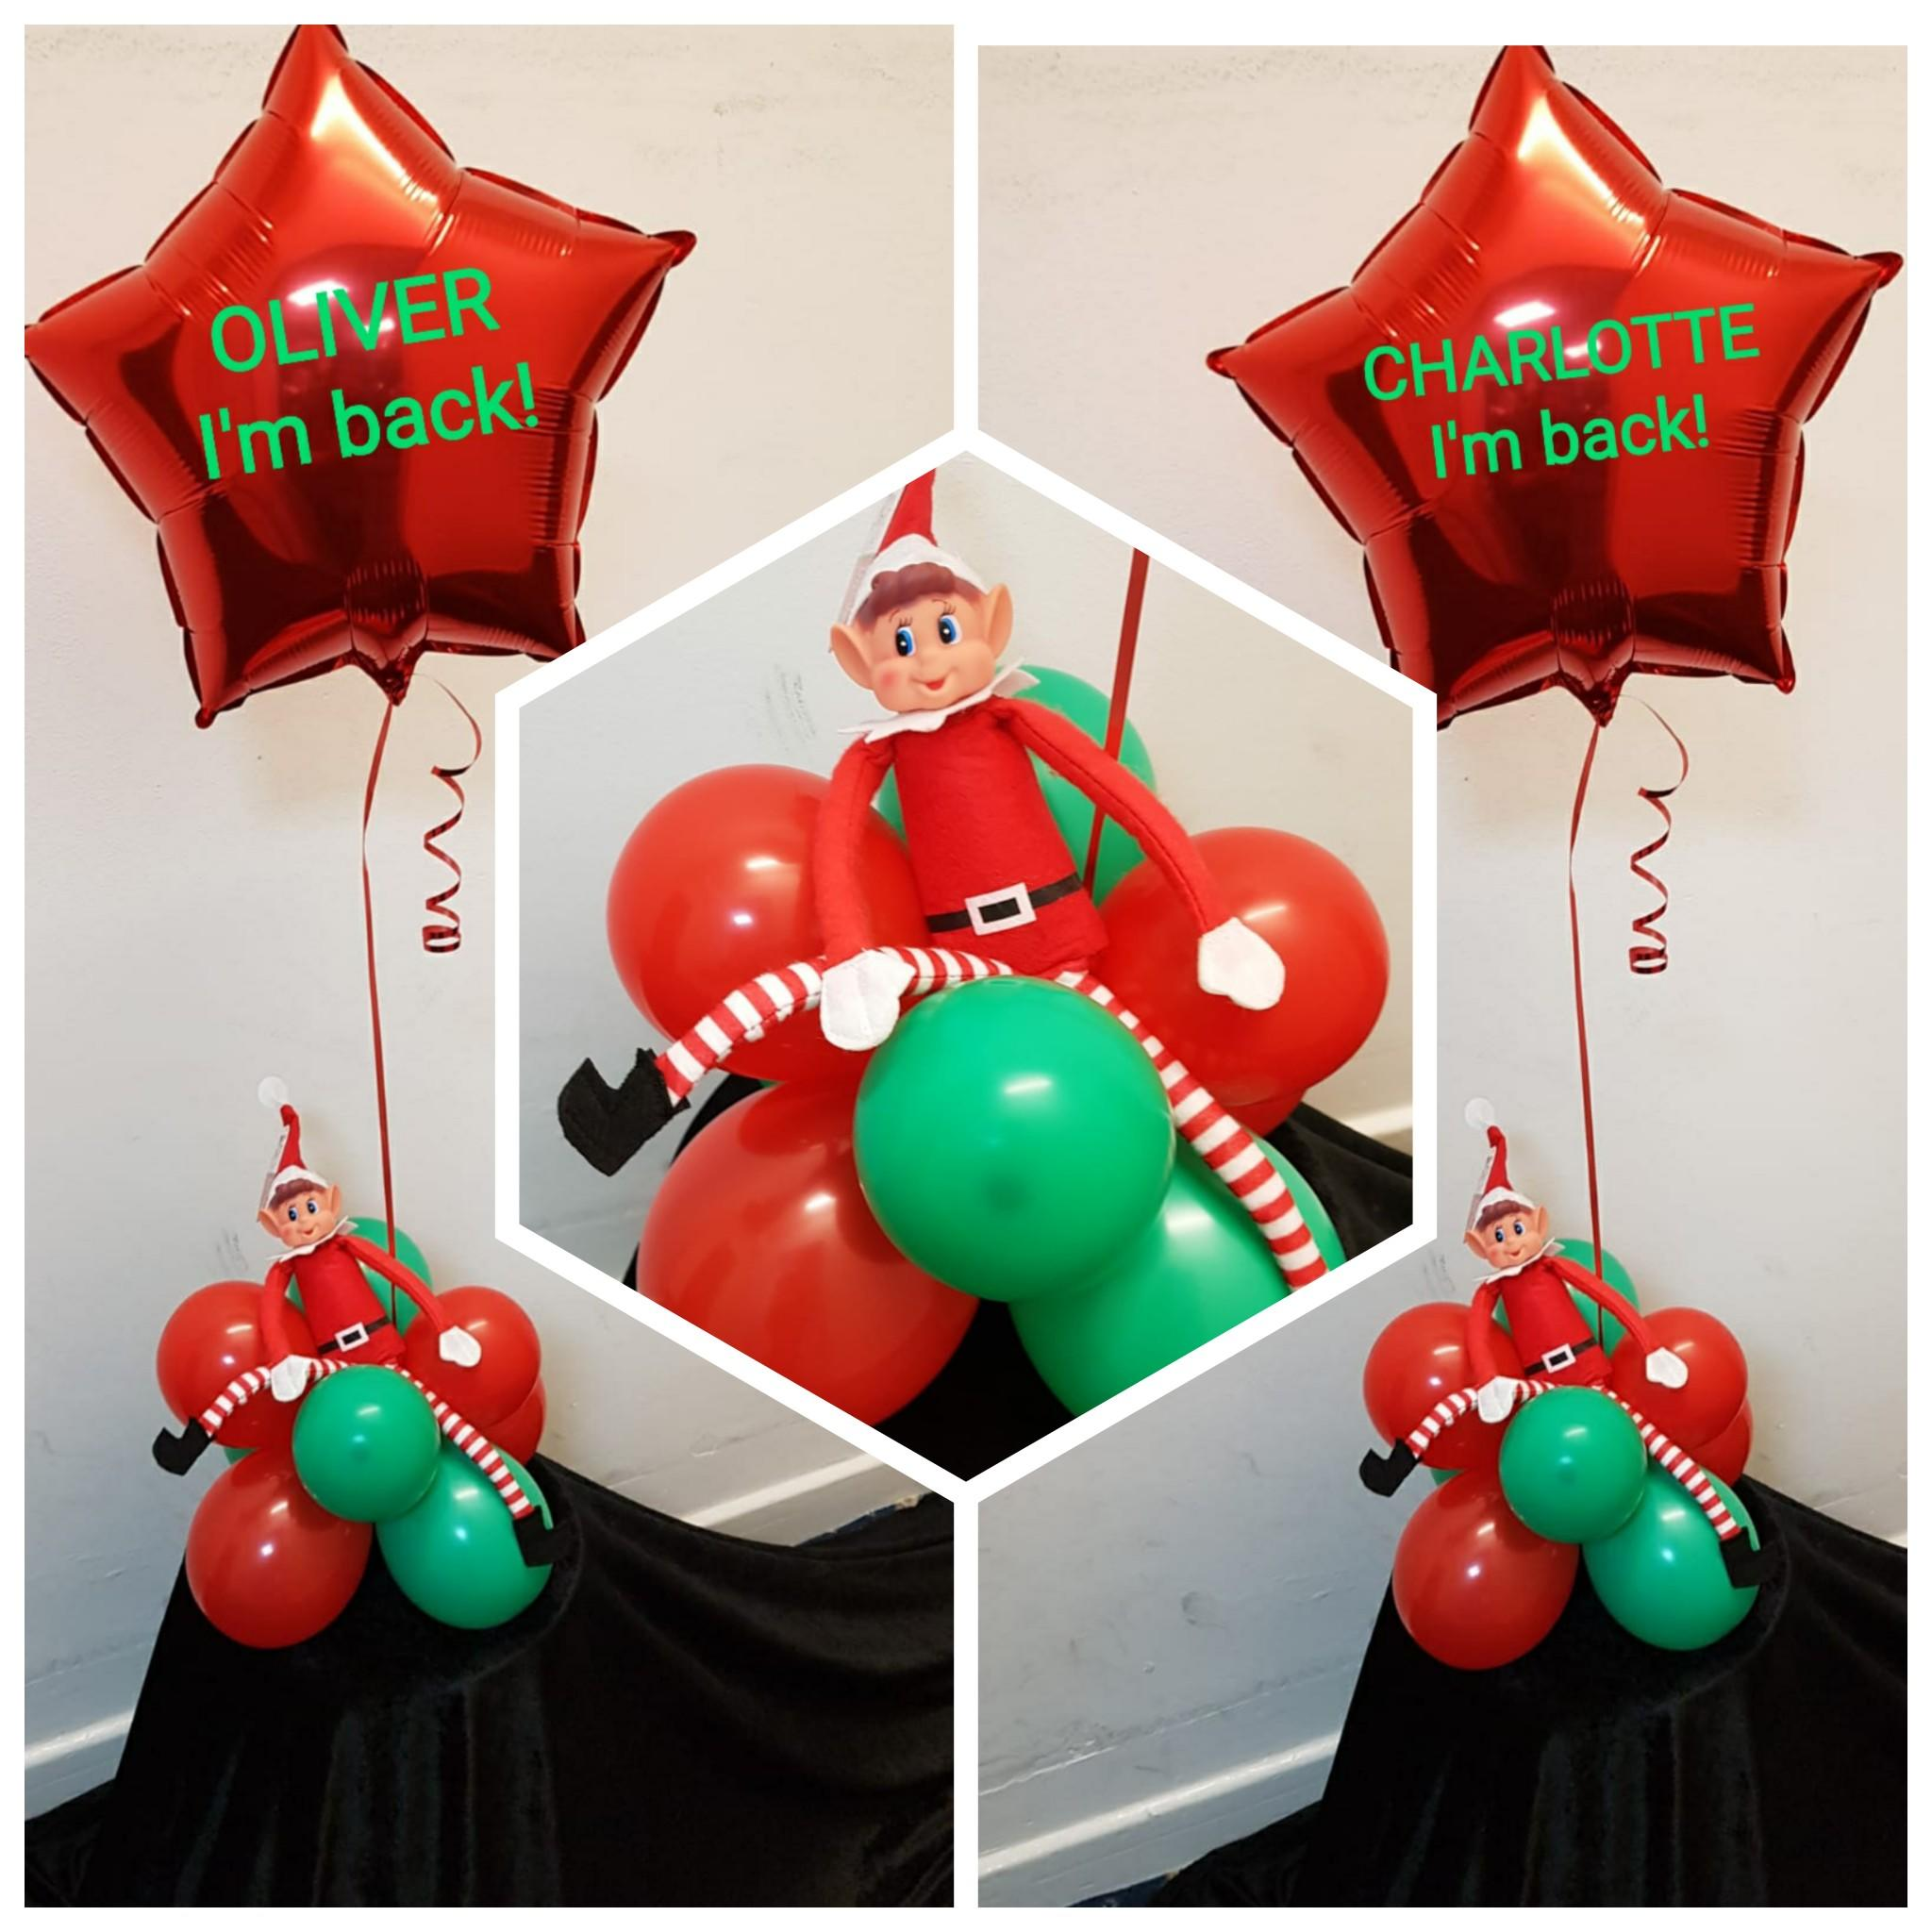 Naughty Elf on a shelf personalised balloon